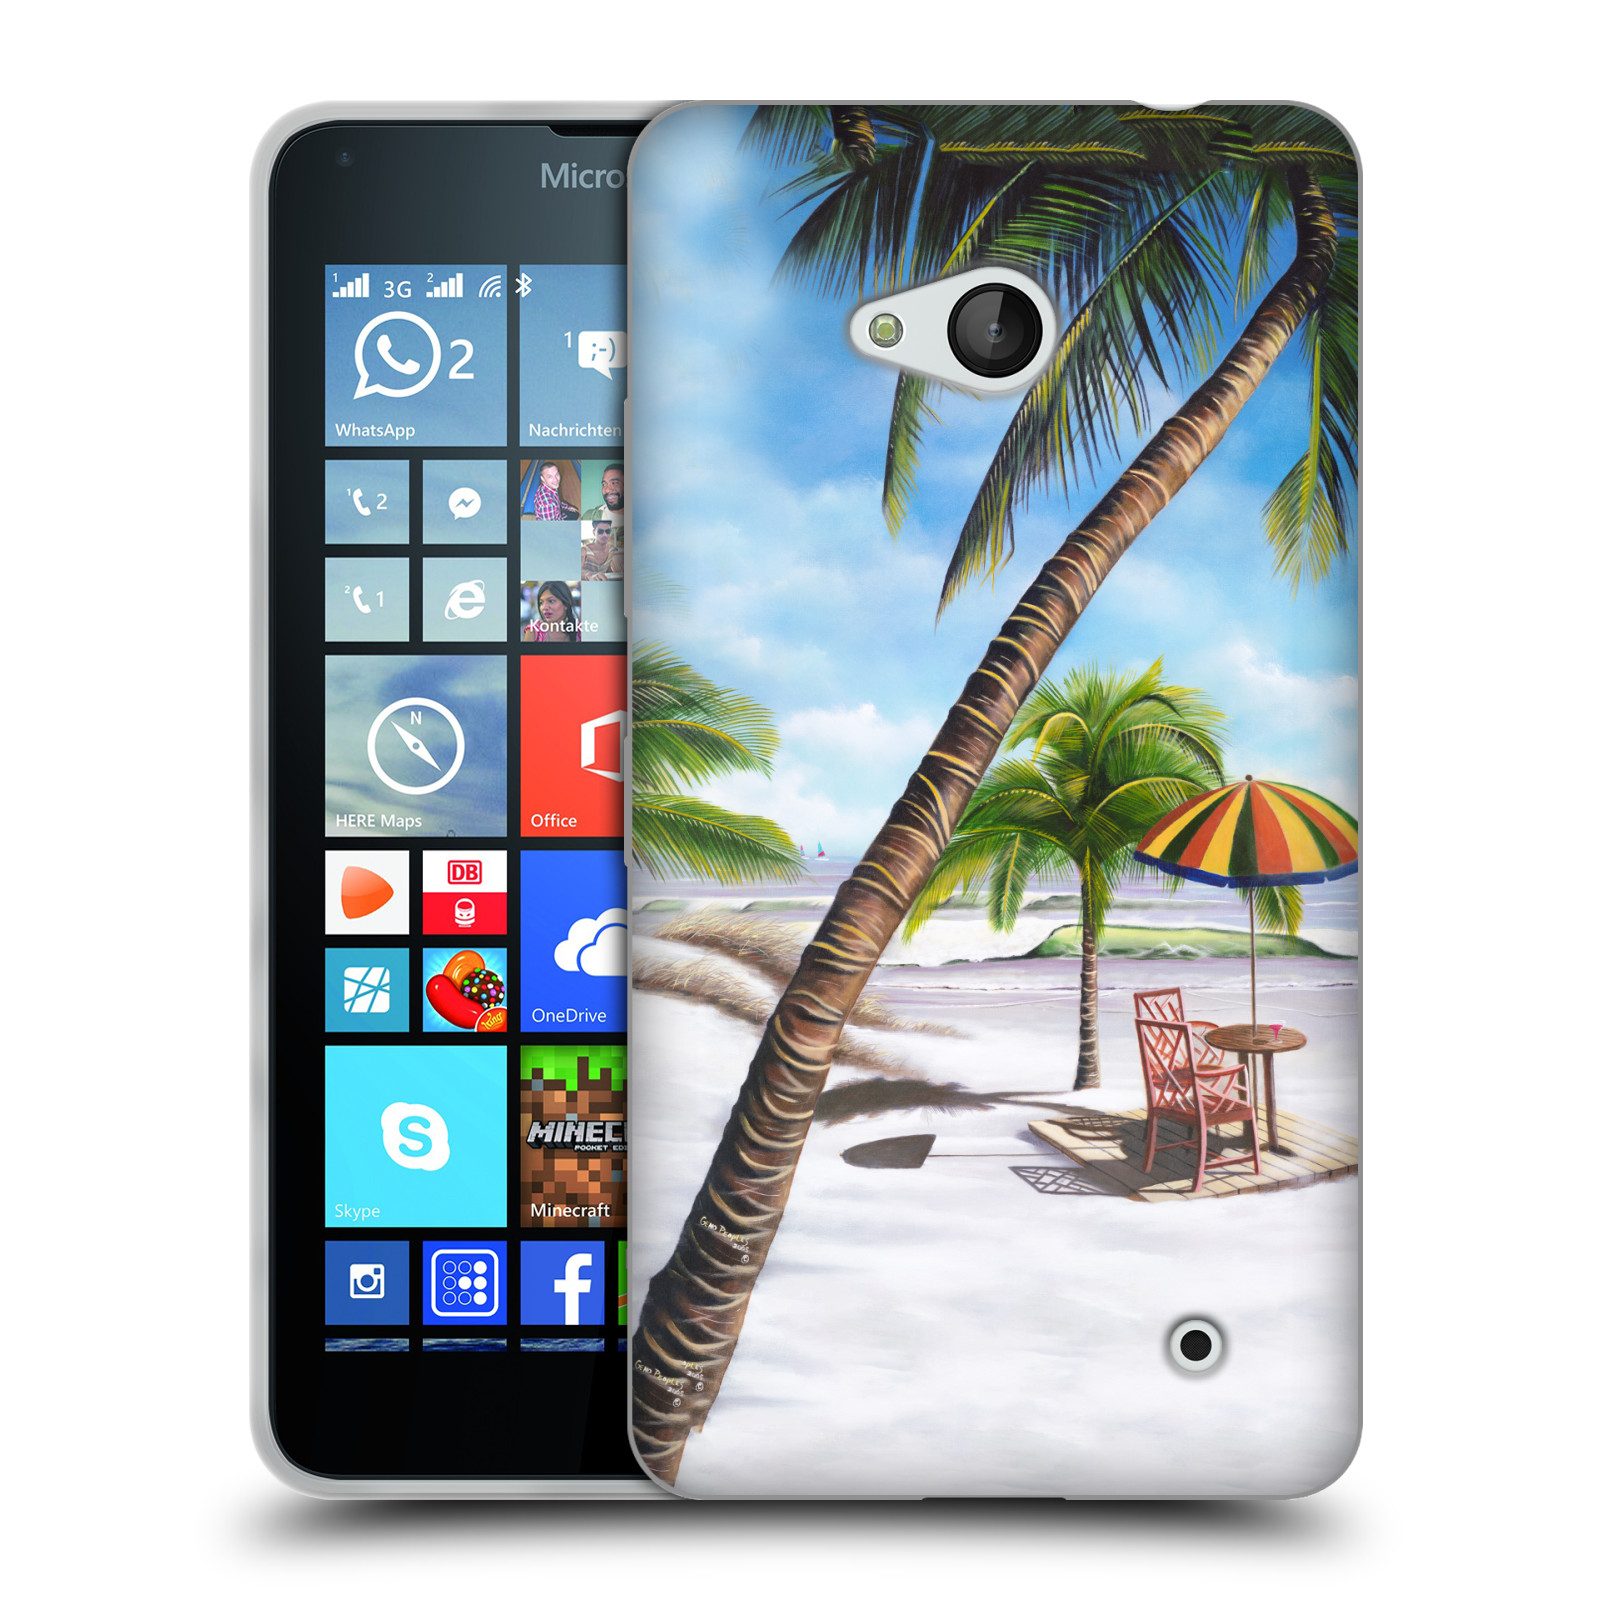 OFFICIAL-GENO-PEOPLES-ART-HOLIDAY-SOFT-GEL-CASE-FOR-MICROSOFT-PHONES